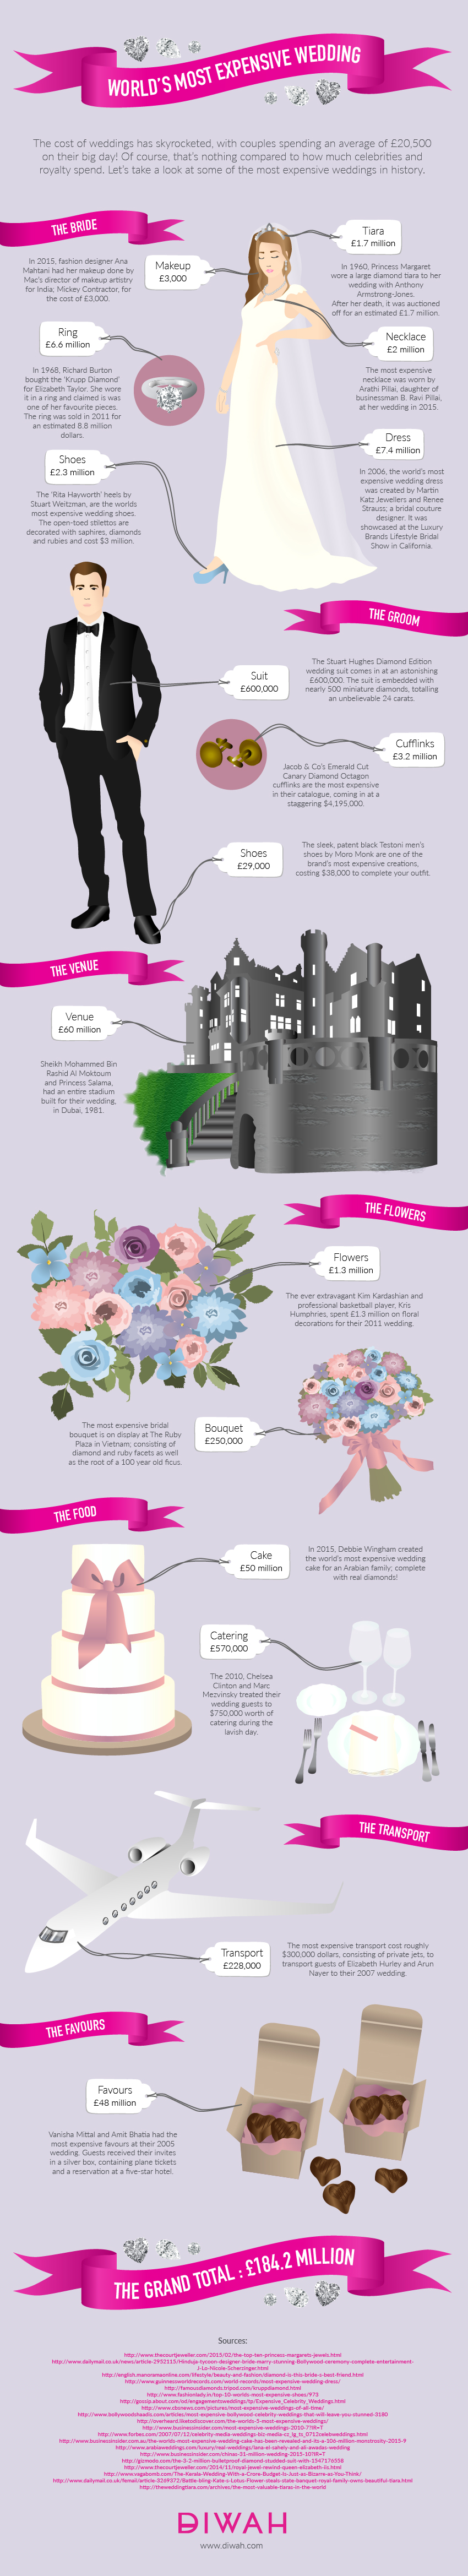 The World's Most Expensive Wedding Infographic at DIWAH.com